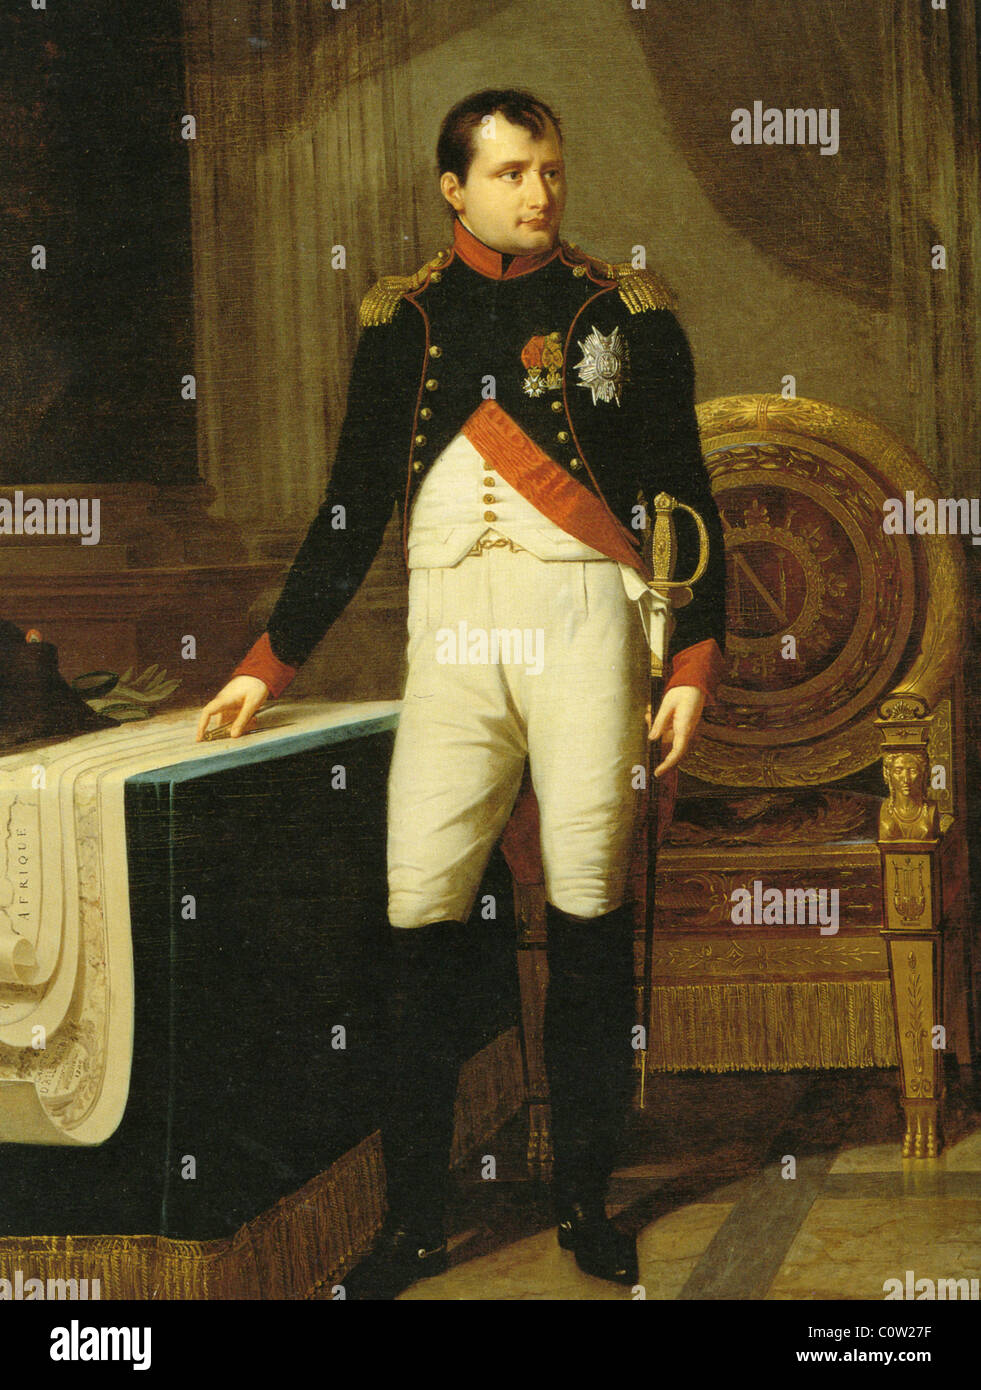 NAPOLEON BONAPARTE (1769-1821) in the uniform of a Colonel of the horse  soldiers of the Imperial Guard